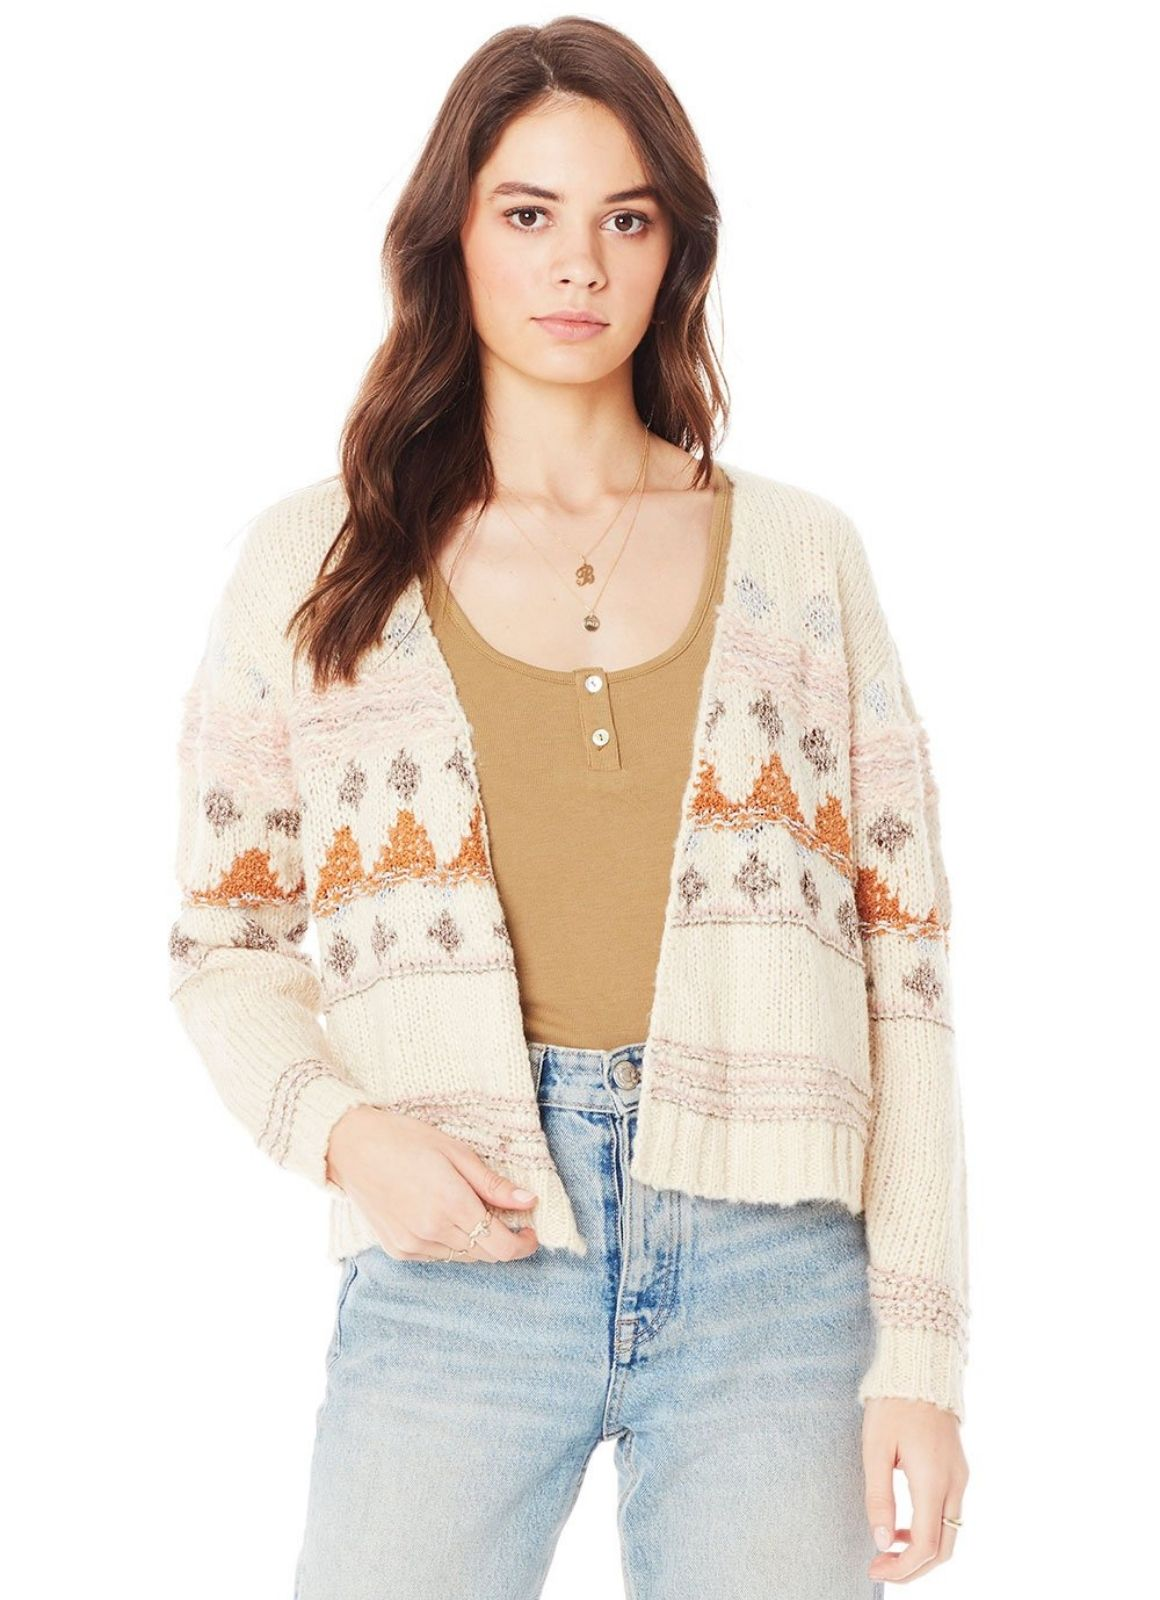 Saltwater Luxe - April Sweater